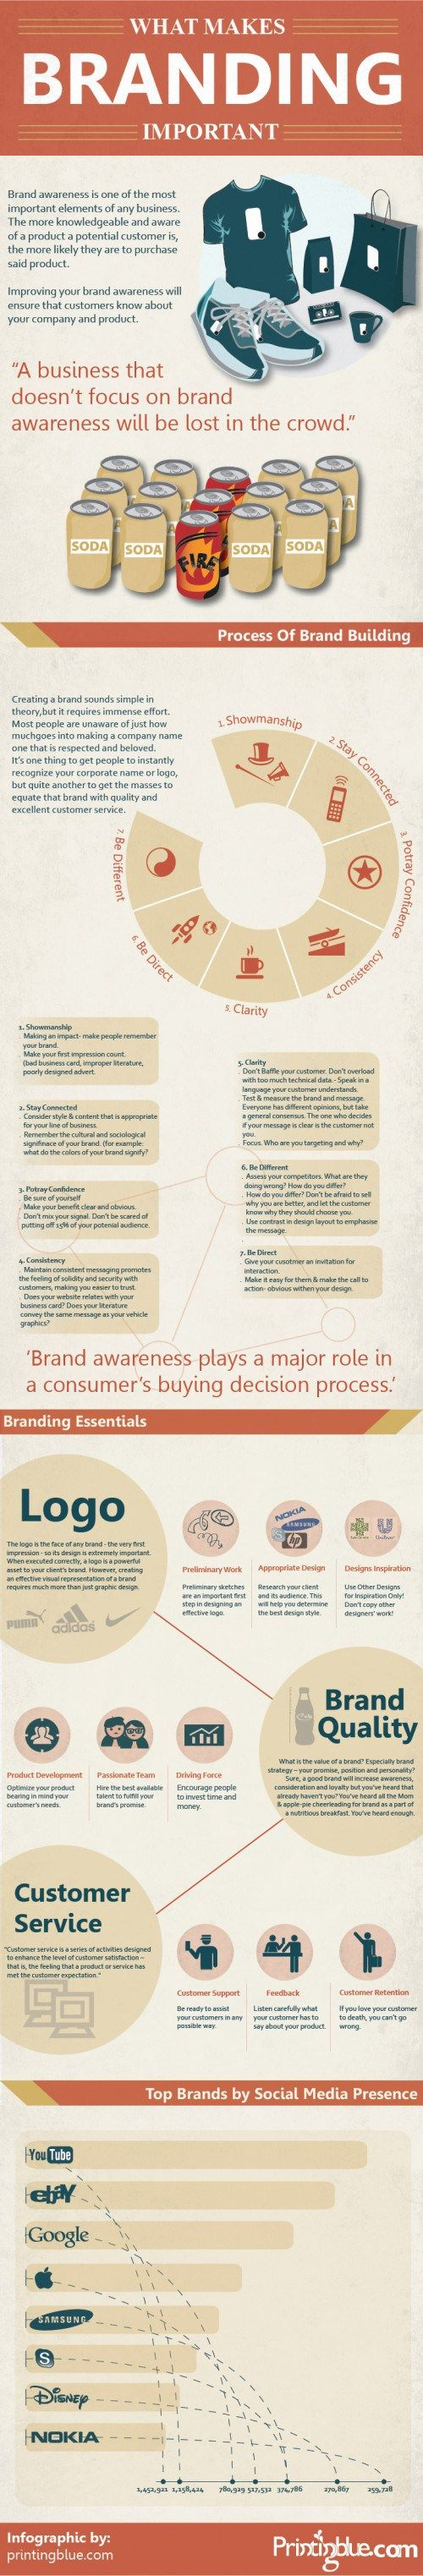 What makes Branding important #infographic #marketing